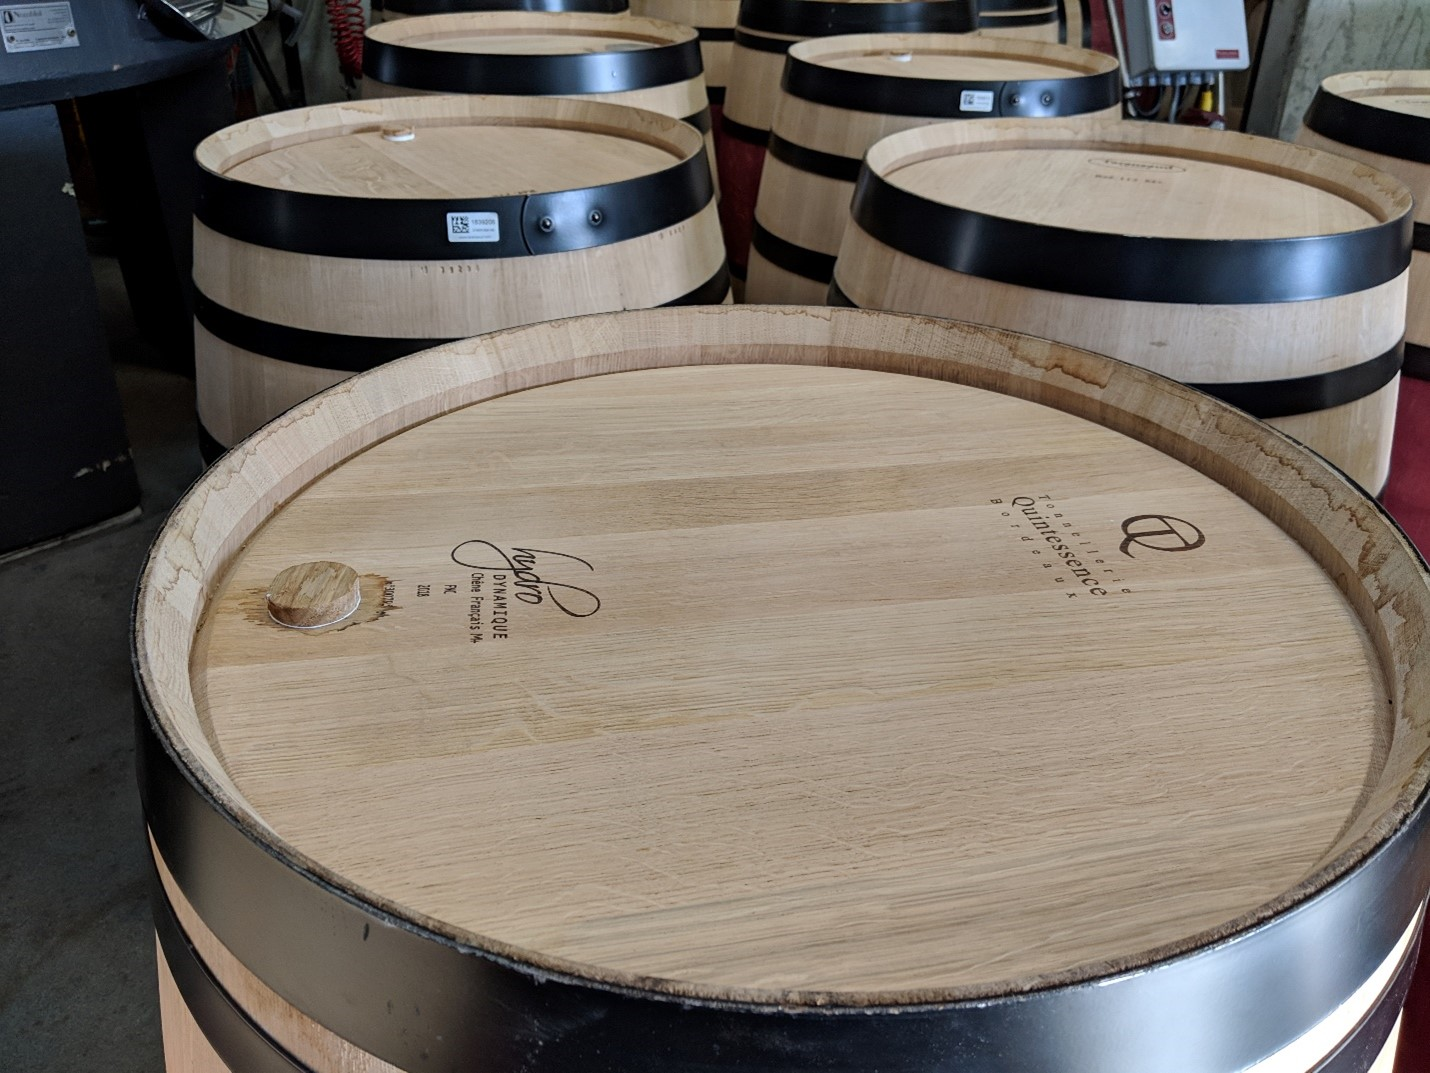 New wine barrels being trialed by a winery.